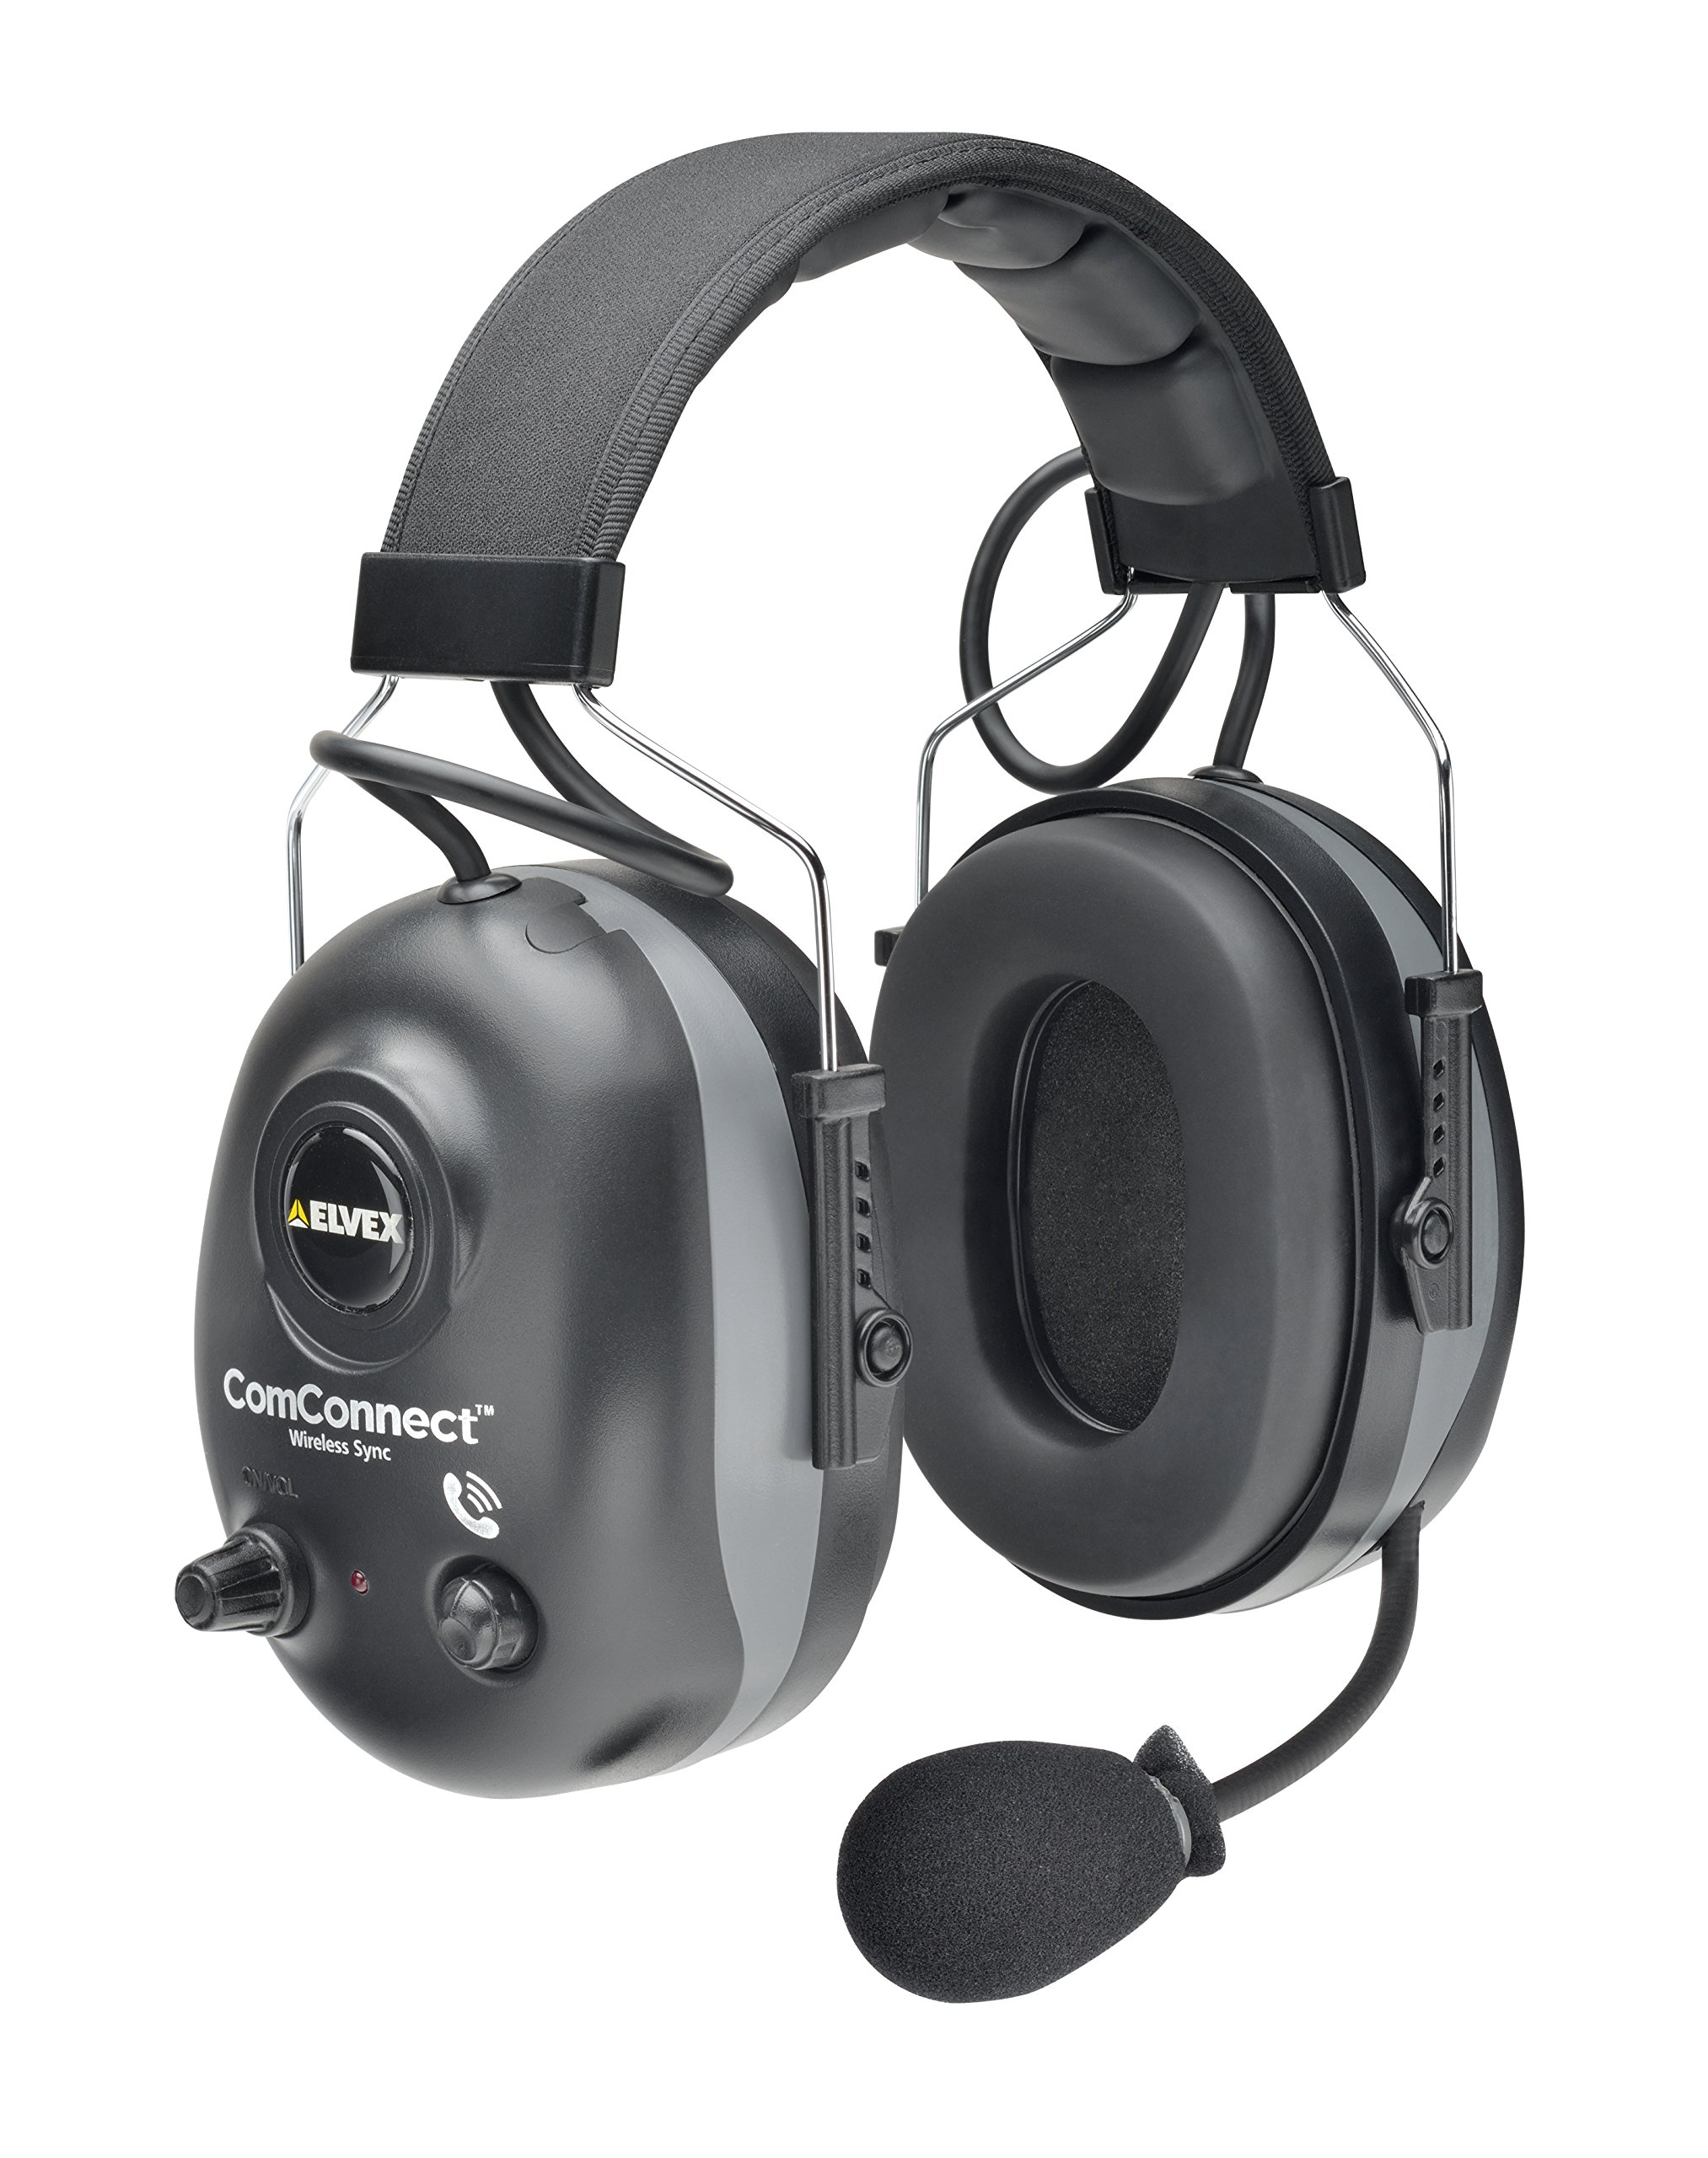 Elvex WELCOM660NRW Comconnect Wireless Synchronization and Communication Electronic Ear Muff, 5'' Height, 9'' Wide, 13'' Length, PVC Headband, ABS Ear Cup and Volume Ring, Steel Fork, One Size